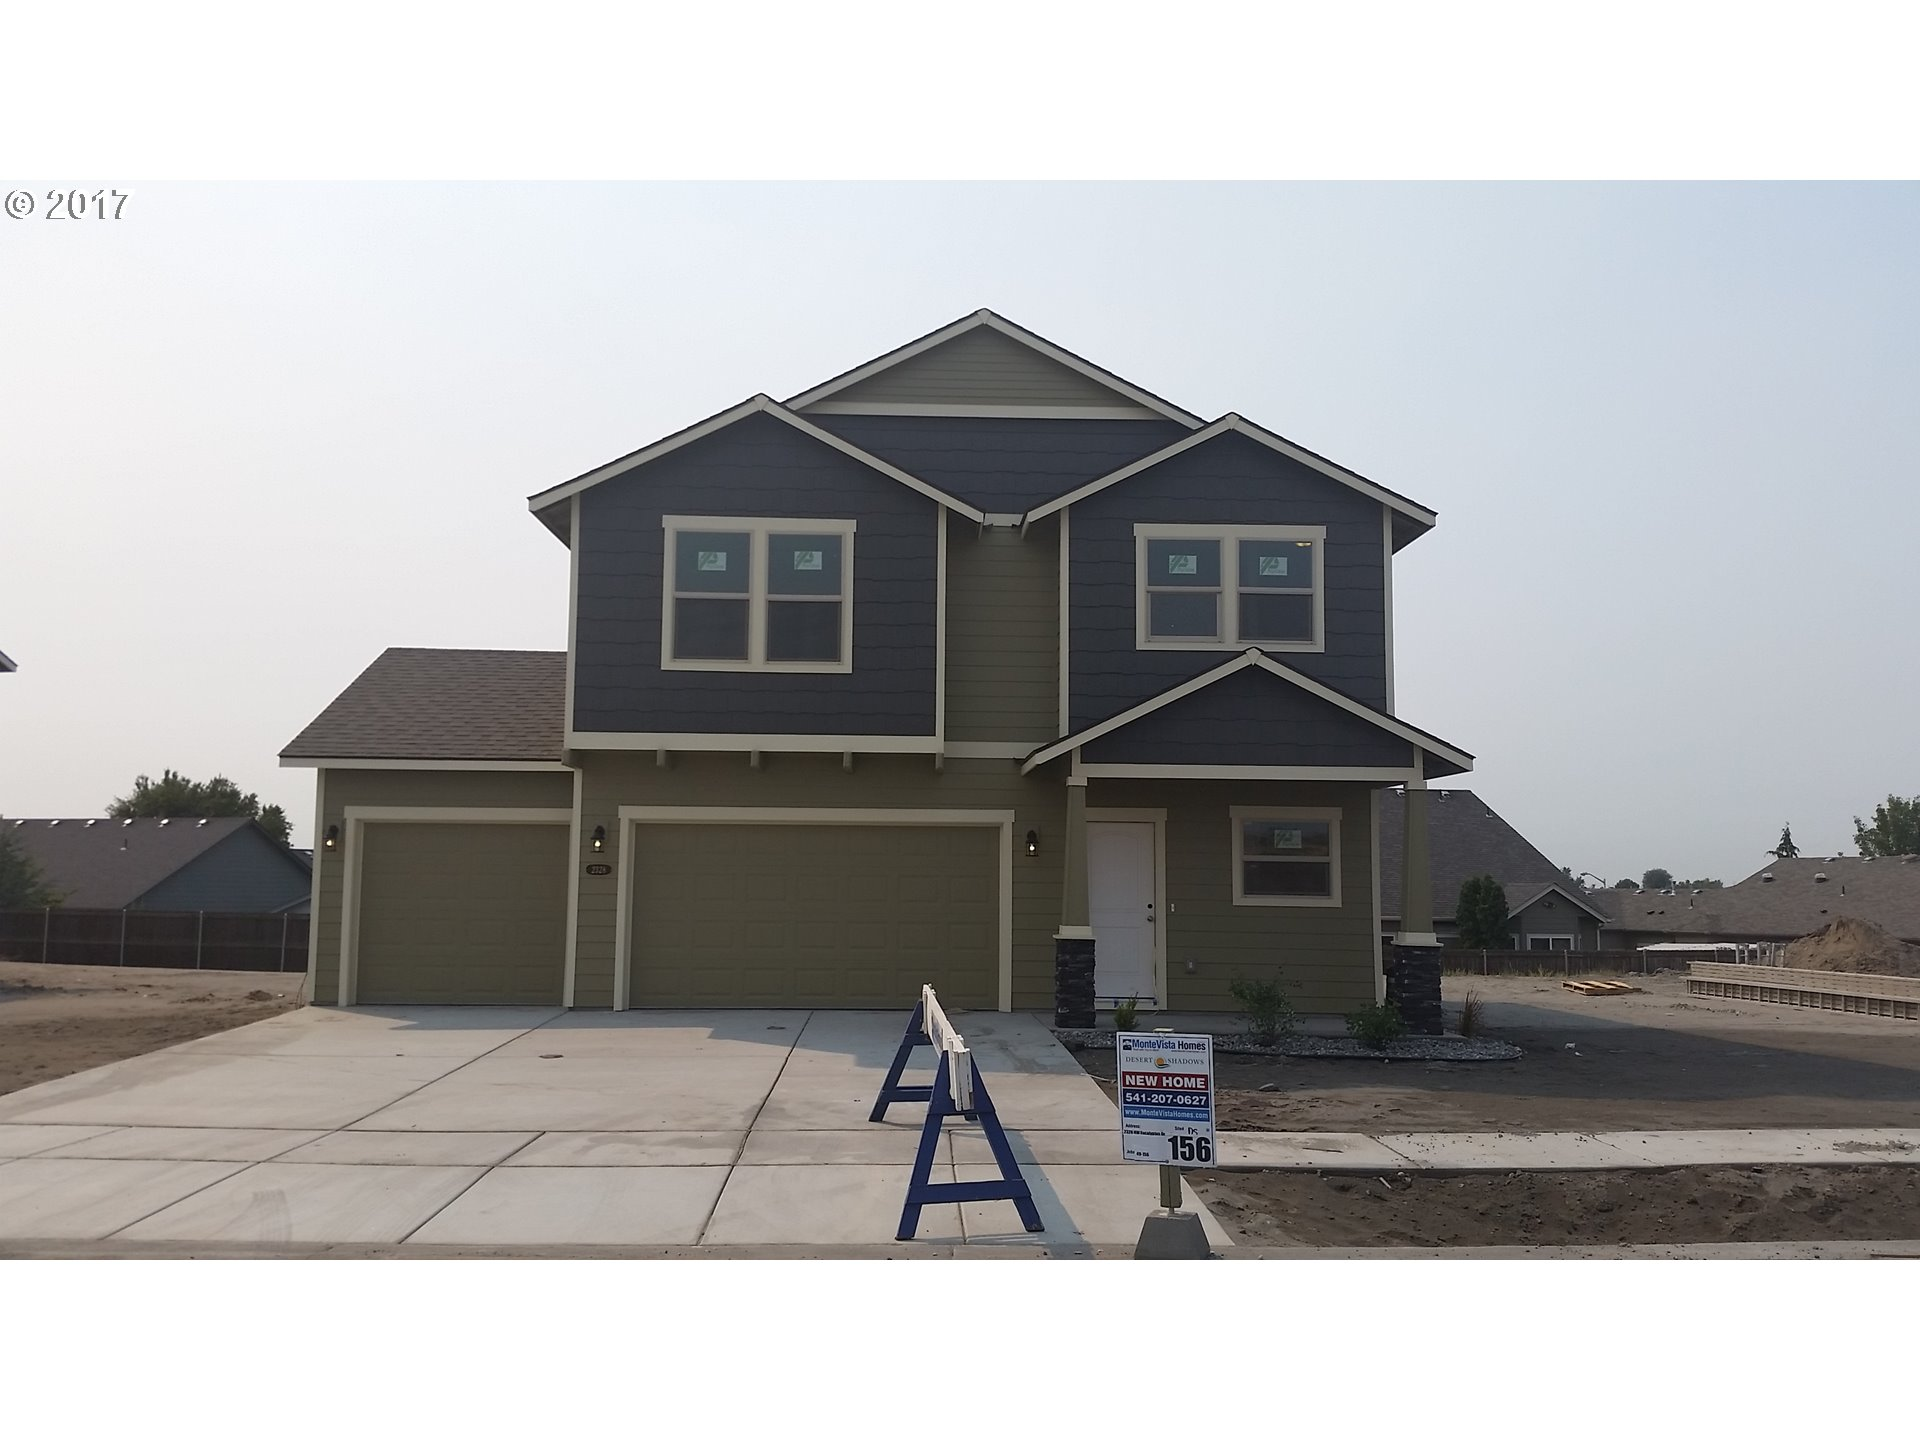 1766 sq. ft 3 bedrooms 2 bathrooms  House For Sale,Hermiston, OR